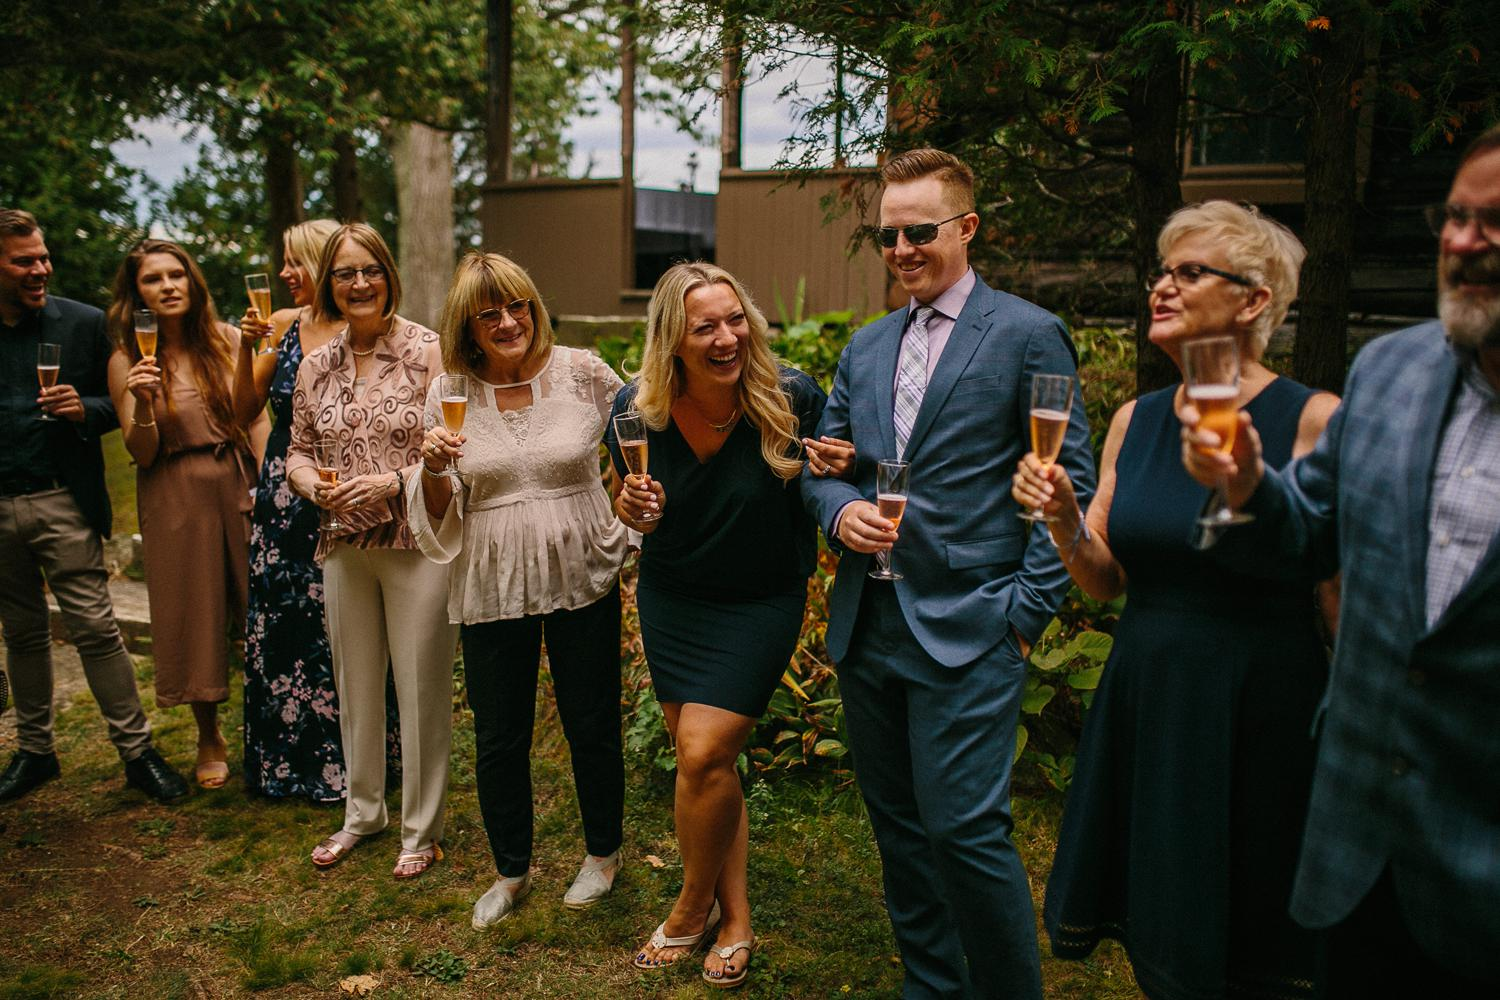 kerry ford photography - small intimate backyard rideau lake island wedding perth ontario-083.jpg